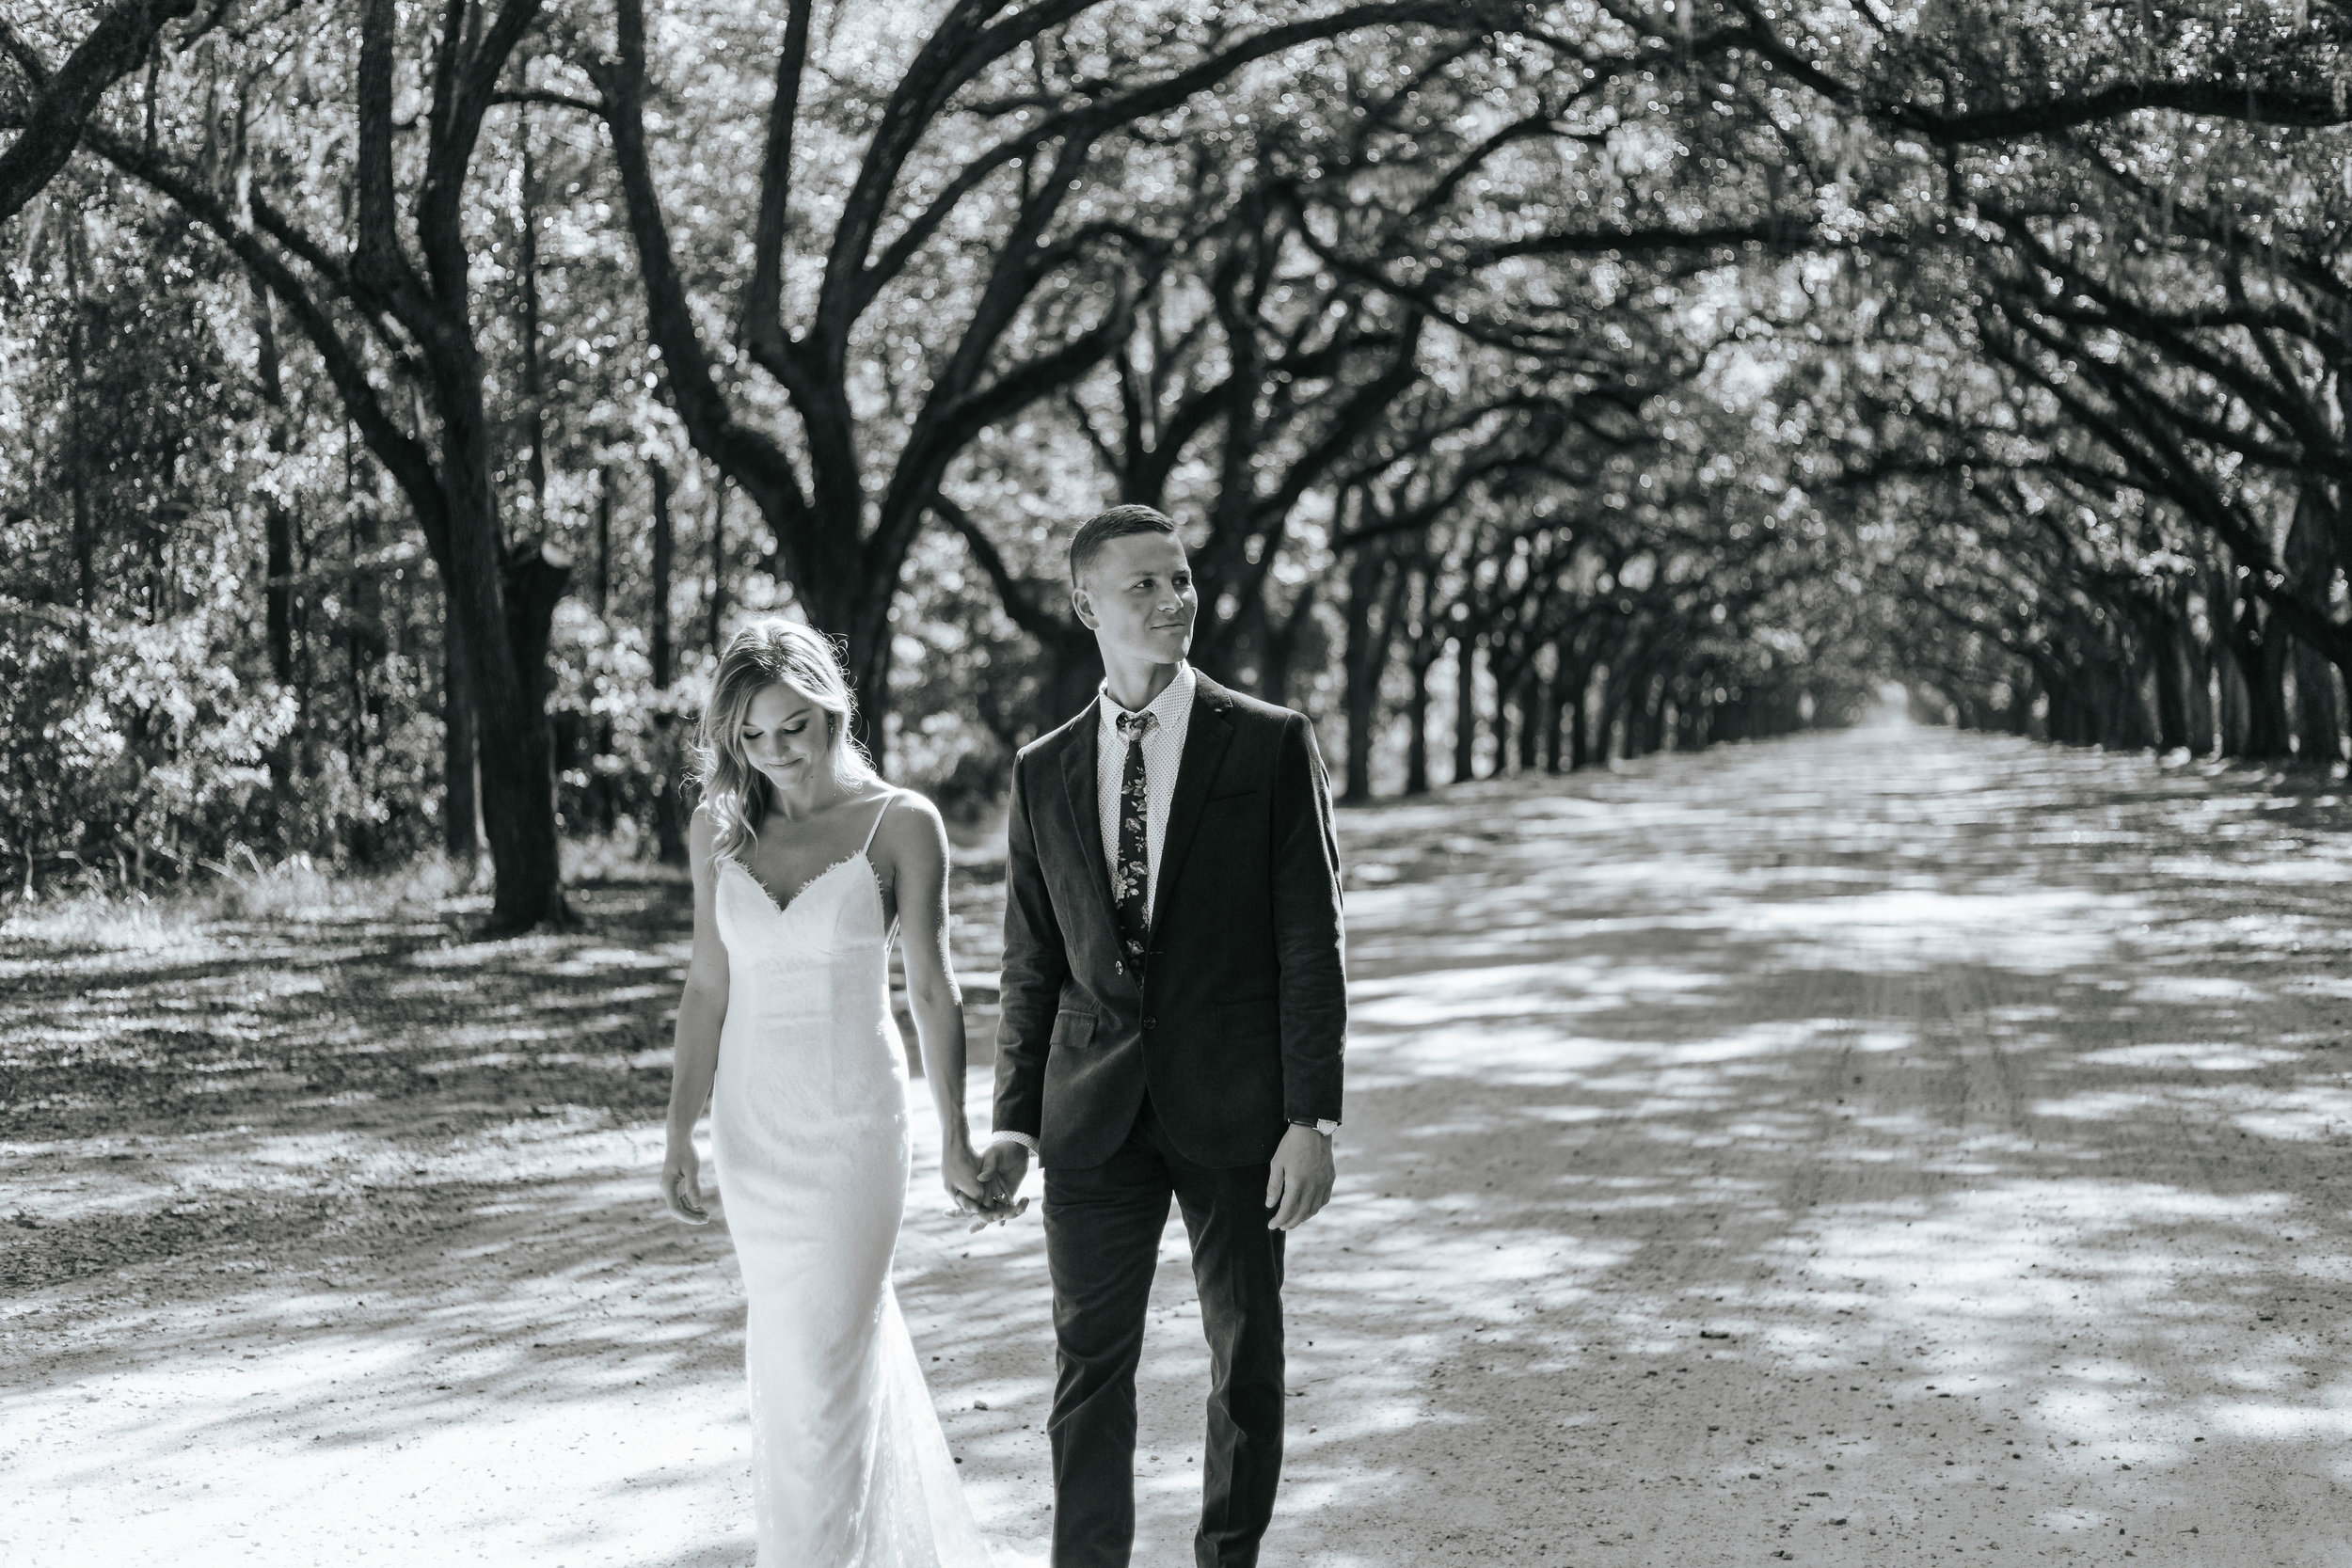 Kourtney_Sean_Savannah_Georgia_Wedding_Wormsloe_Histroic_Site_Coastal_Georgia_Botanical_Gardens_Photography_by_V_3197.jpg